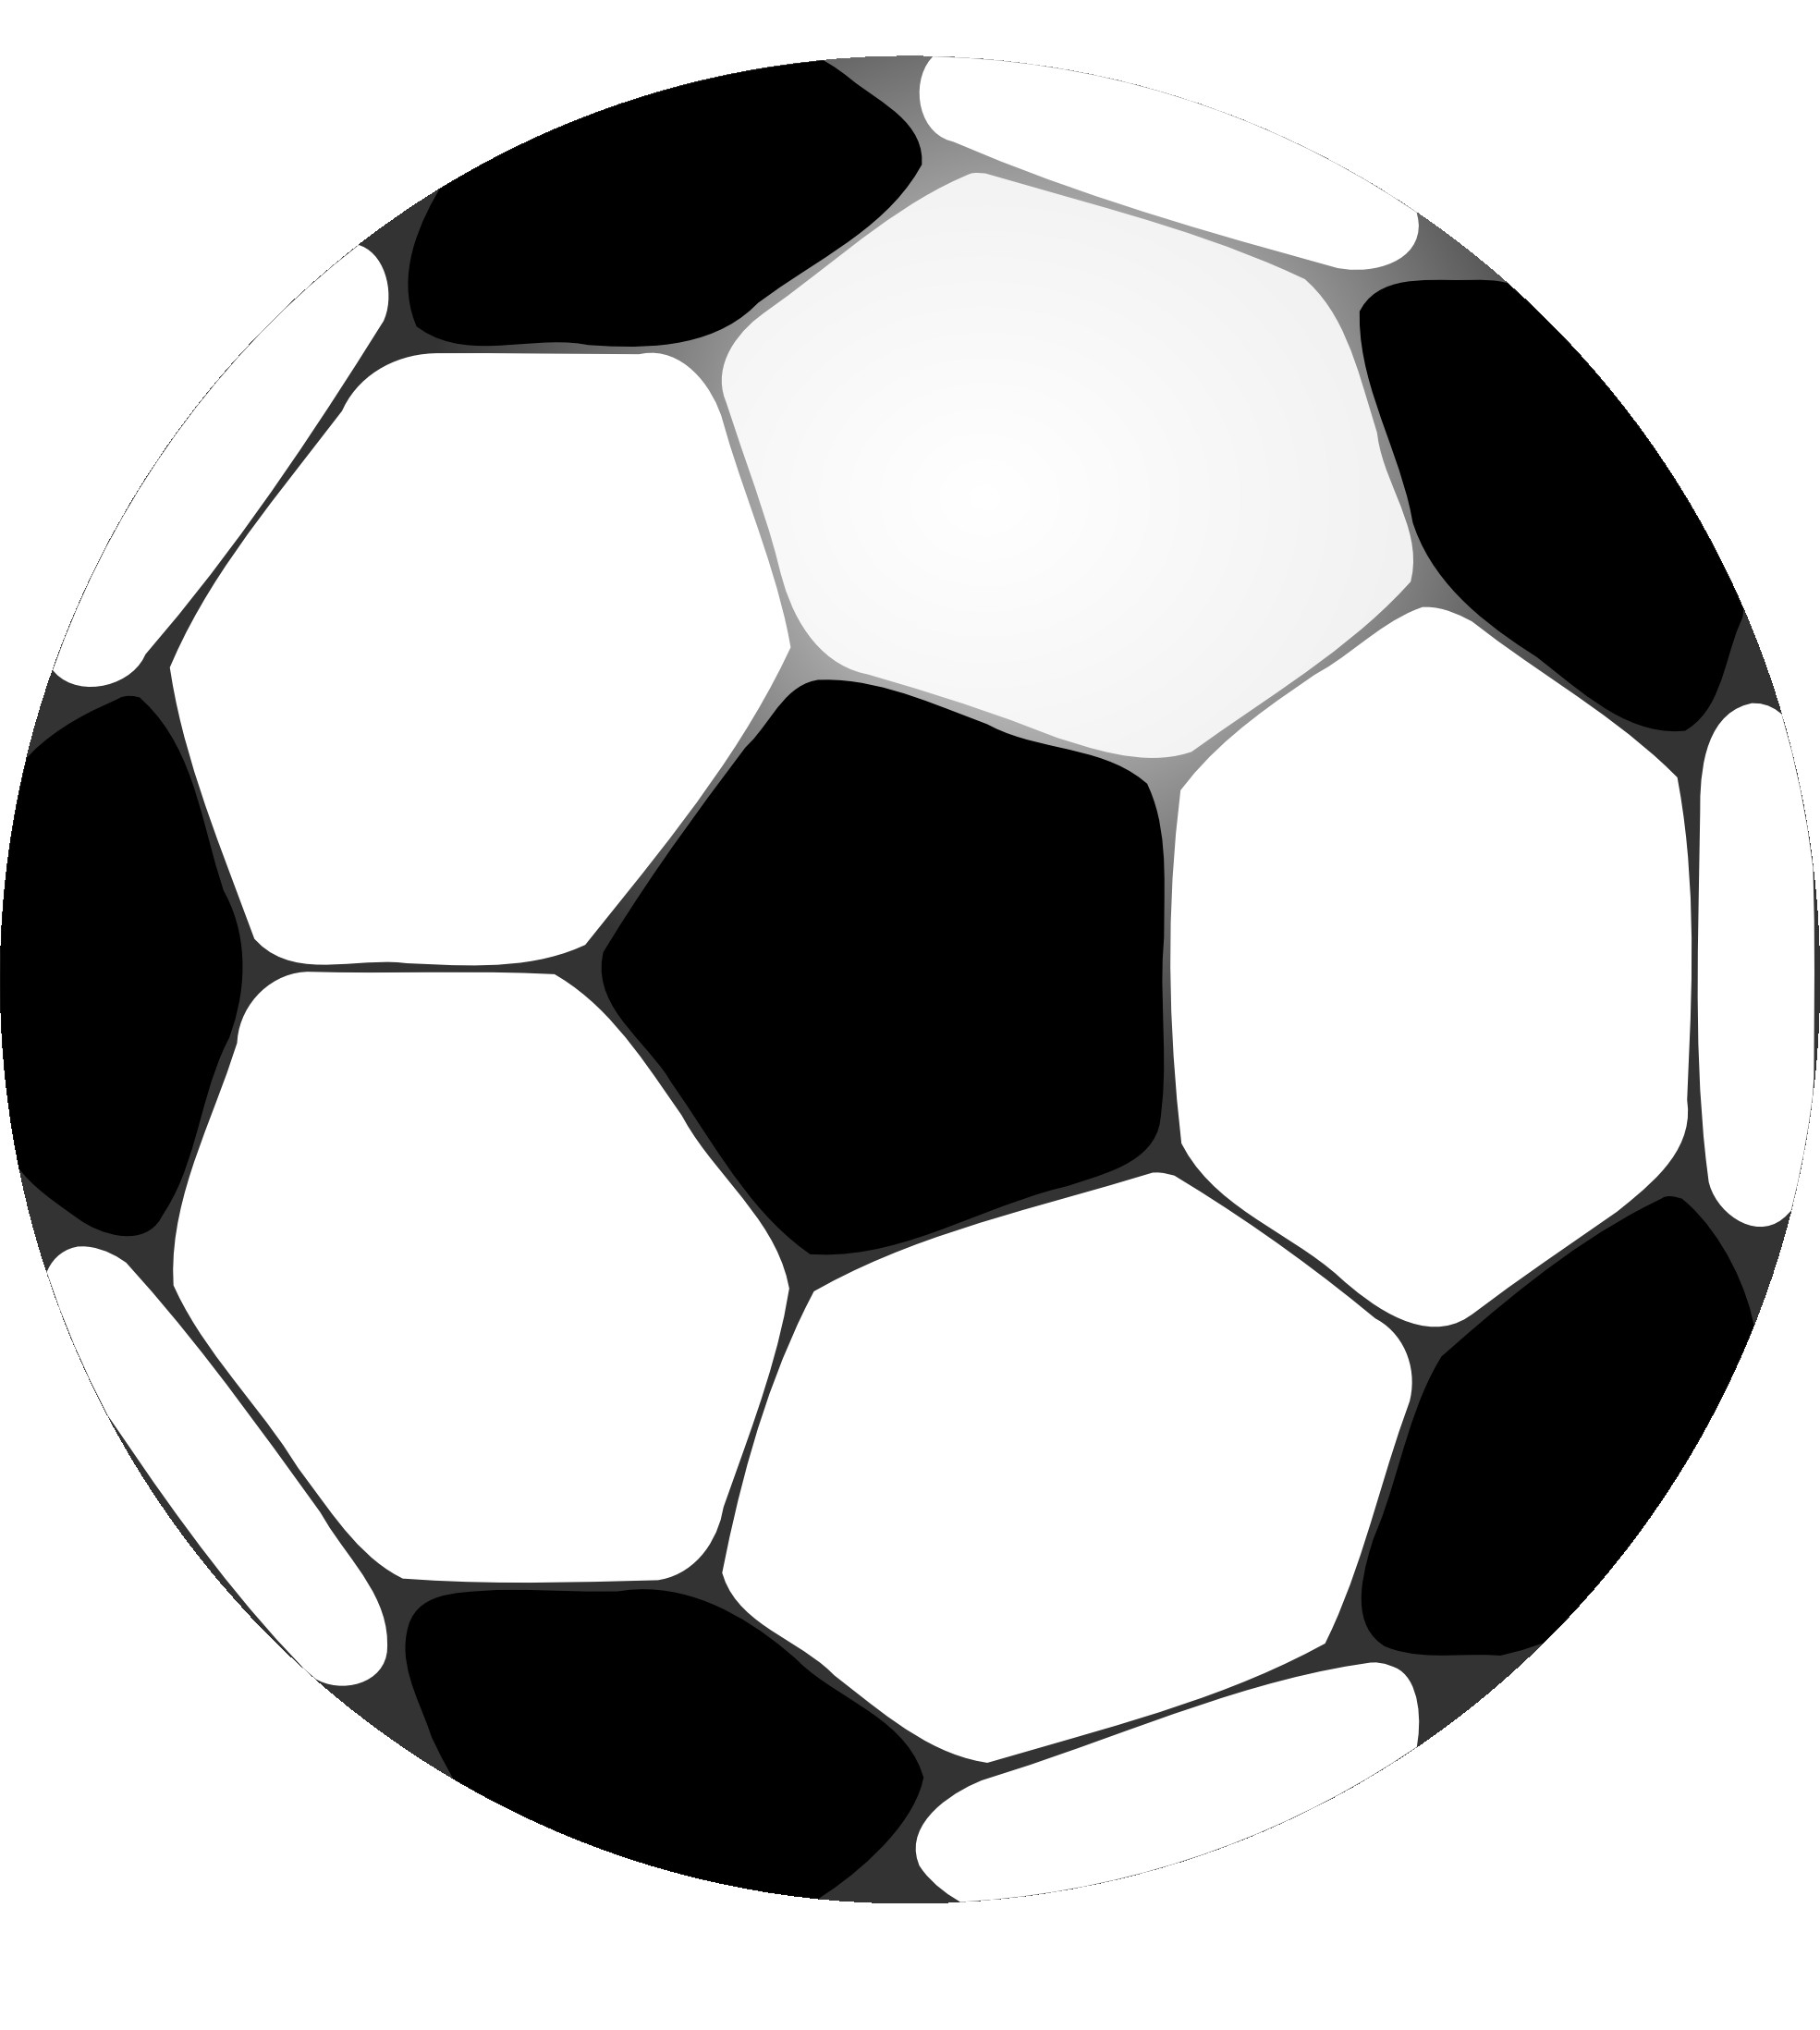 Clipart soccer pics in black and white clip free library Free Black And White Football Clipart, Download Free Clip Art, Free ... clip free library